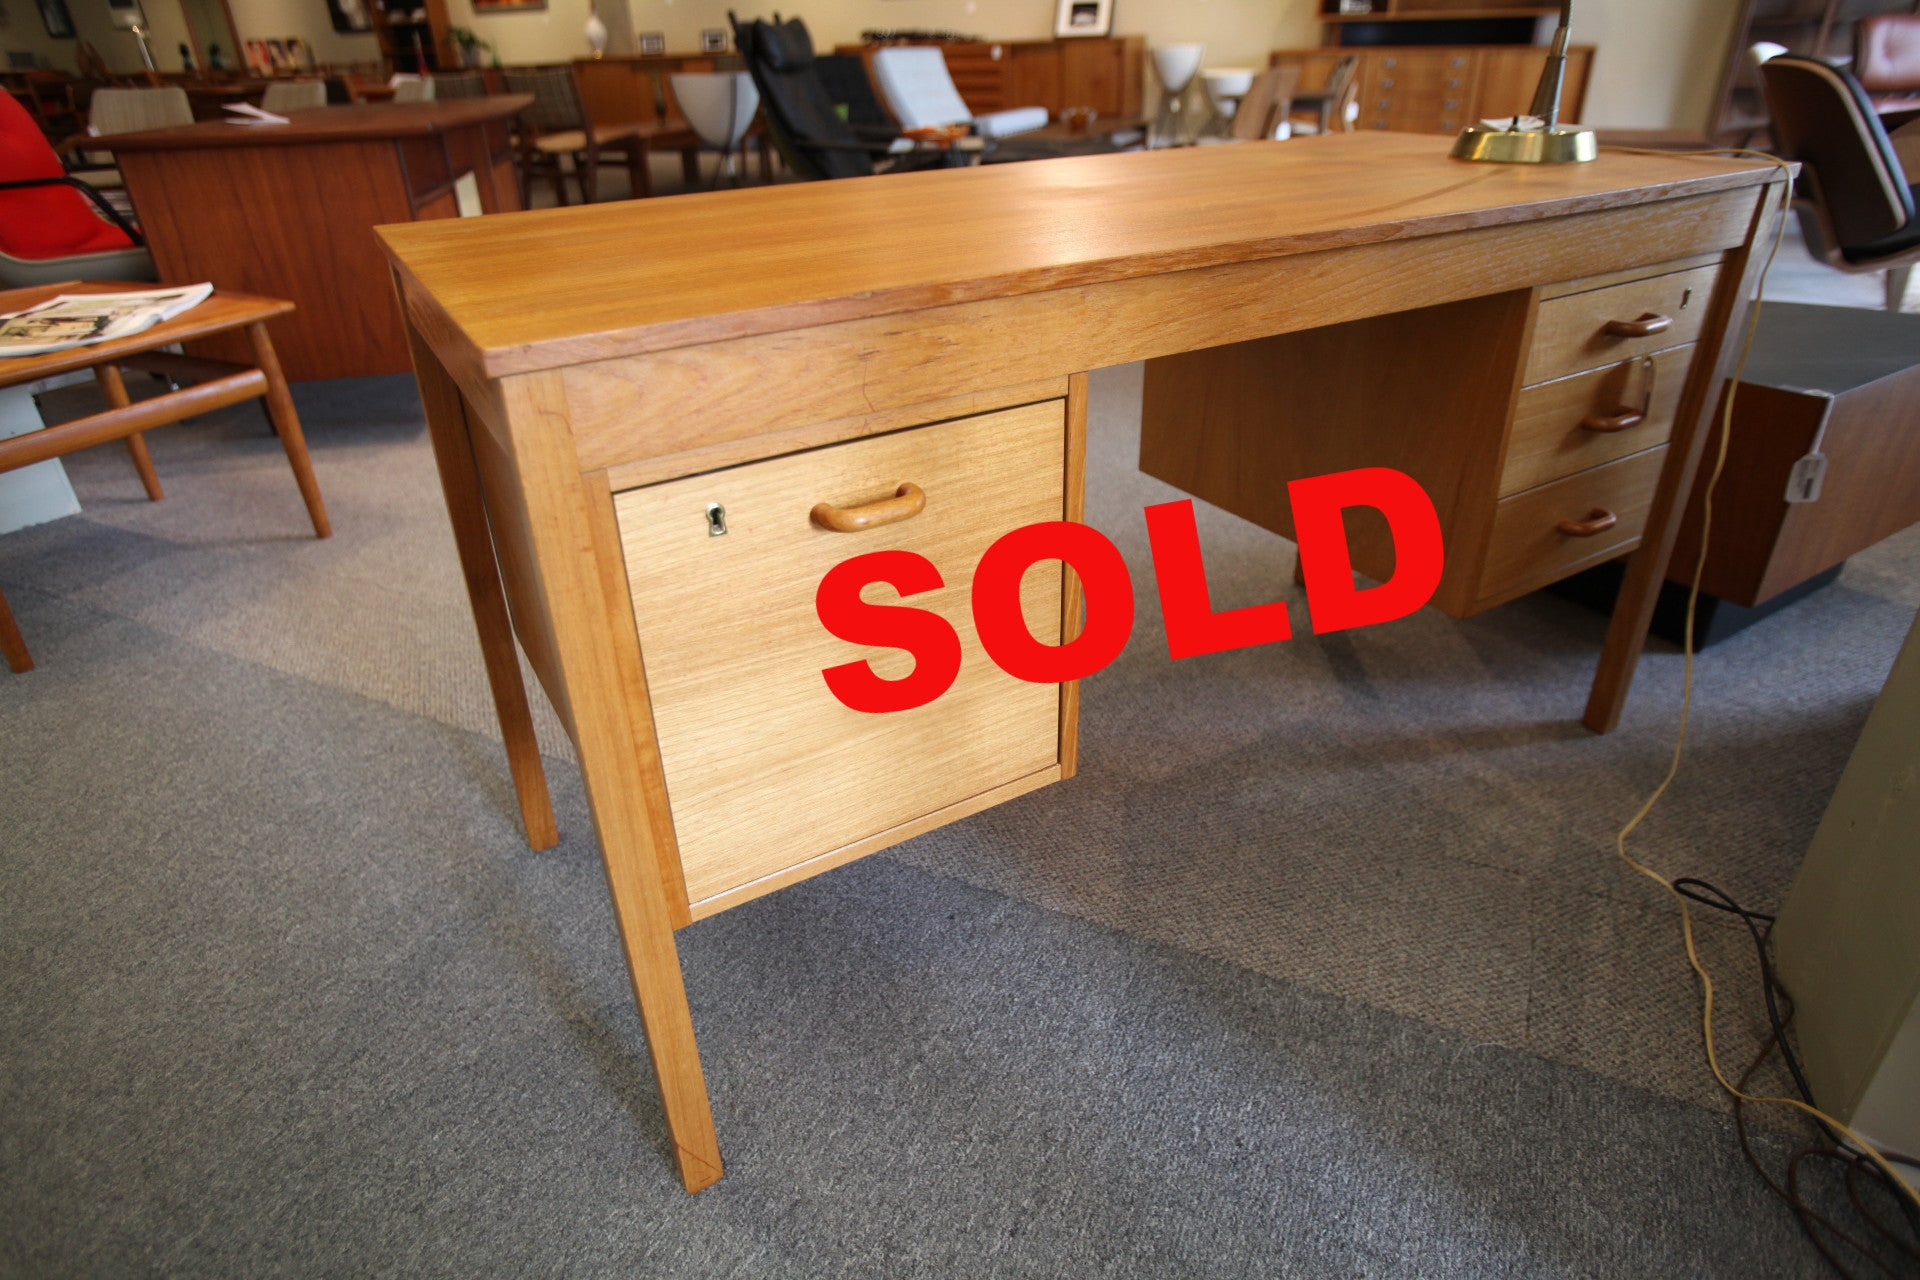 top teak nielsen gunnar standing century danish mid floating tibergaard by desk for free designed